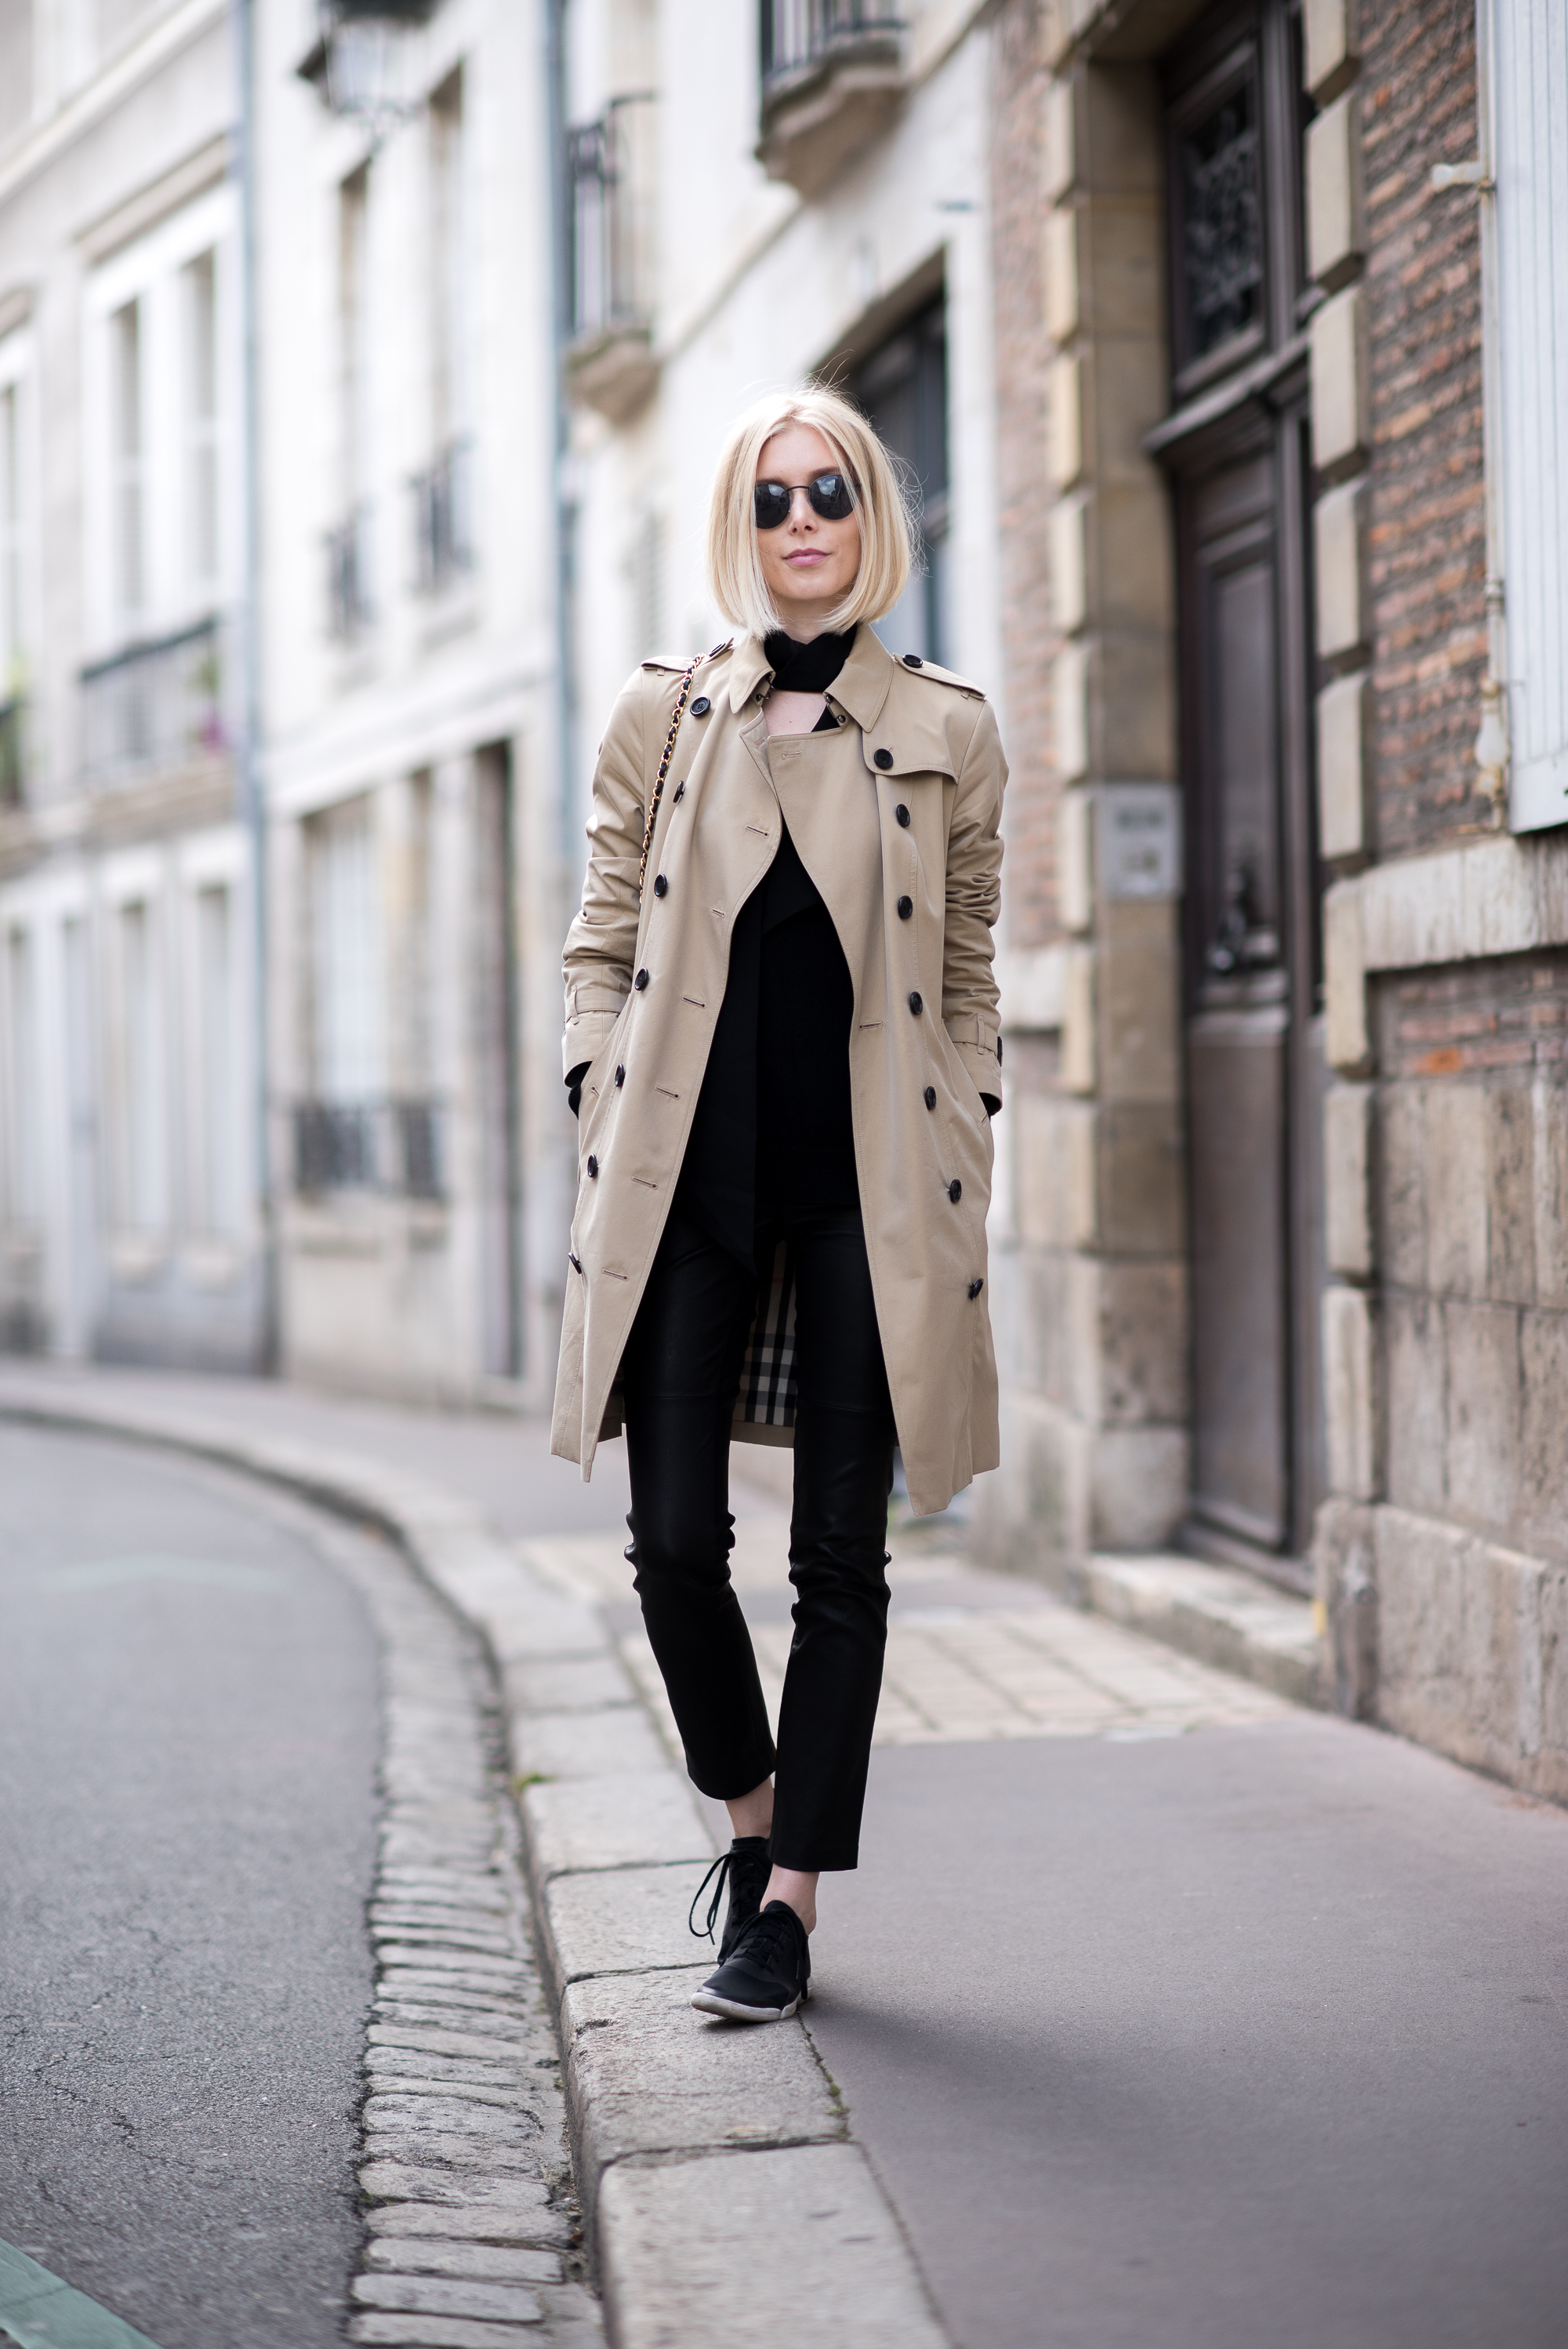 burberry-trench-outfit-1